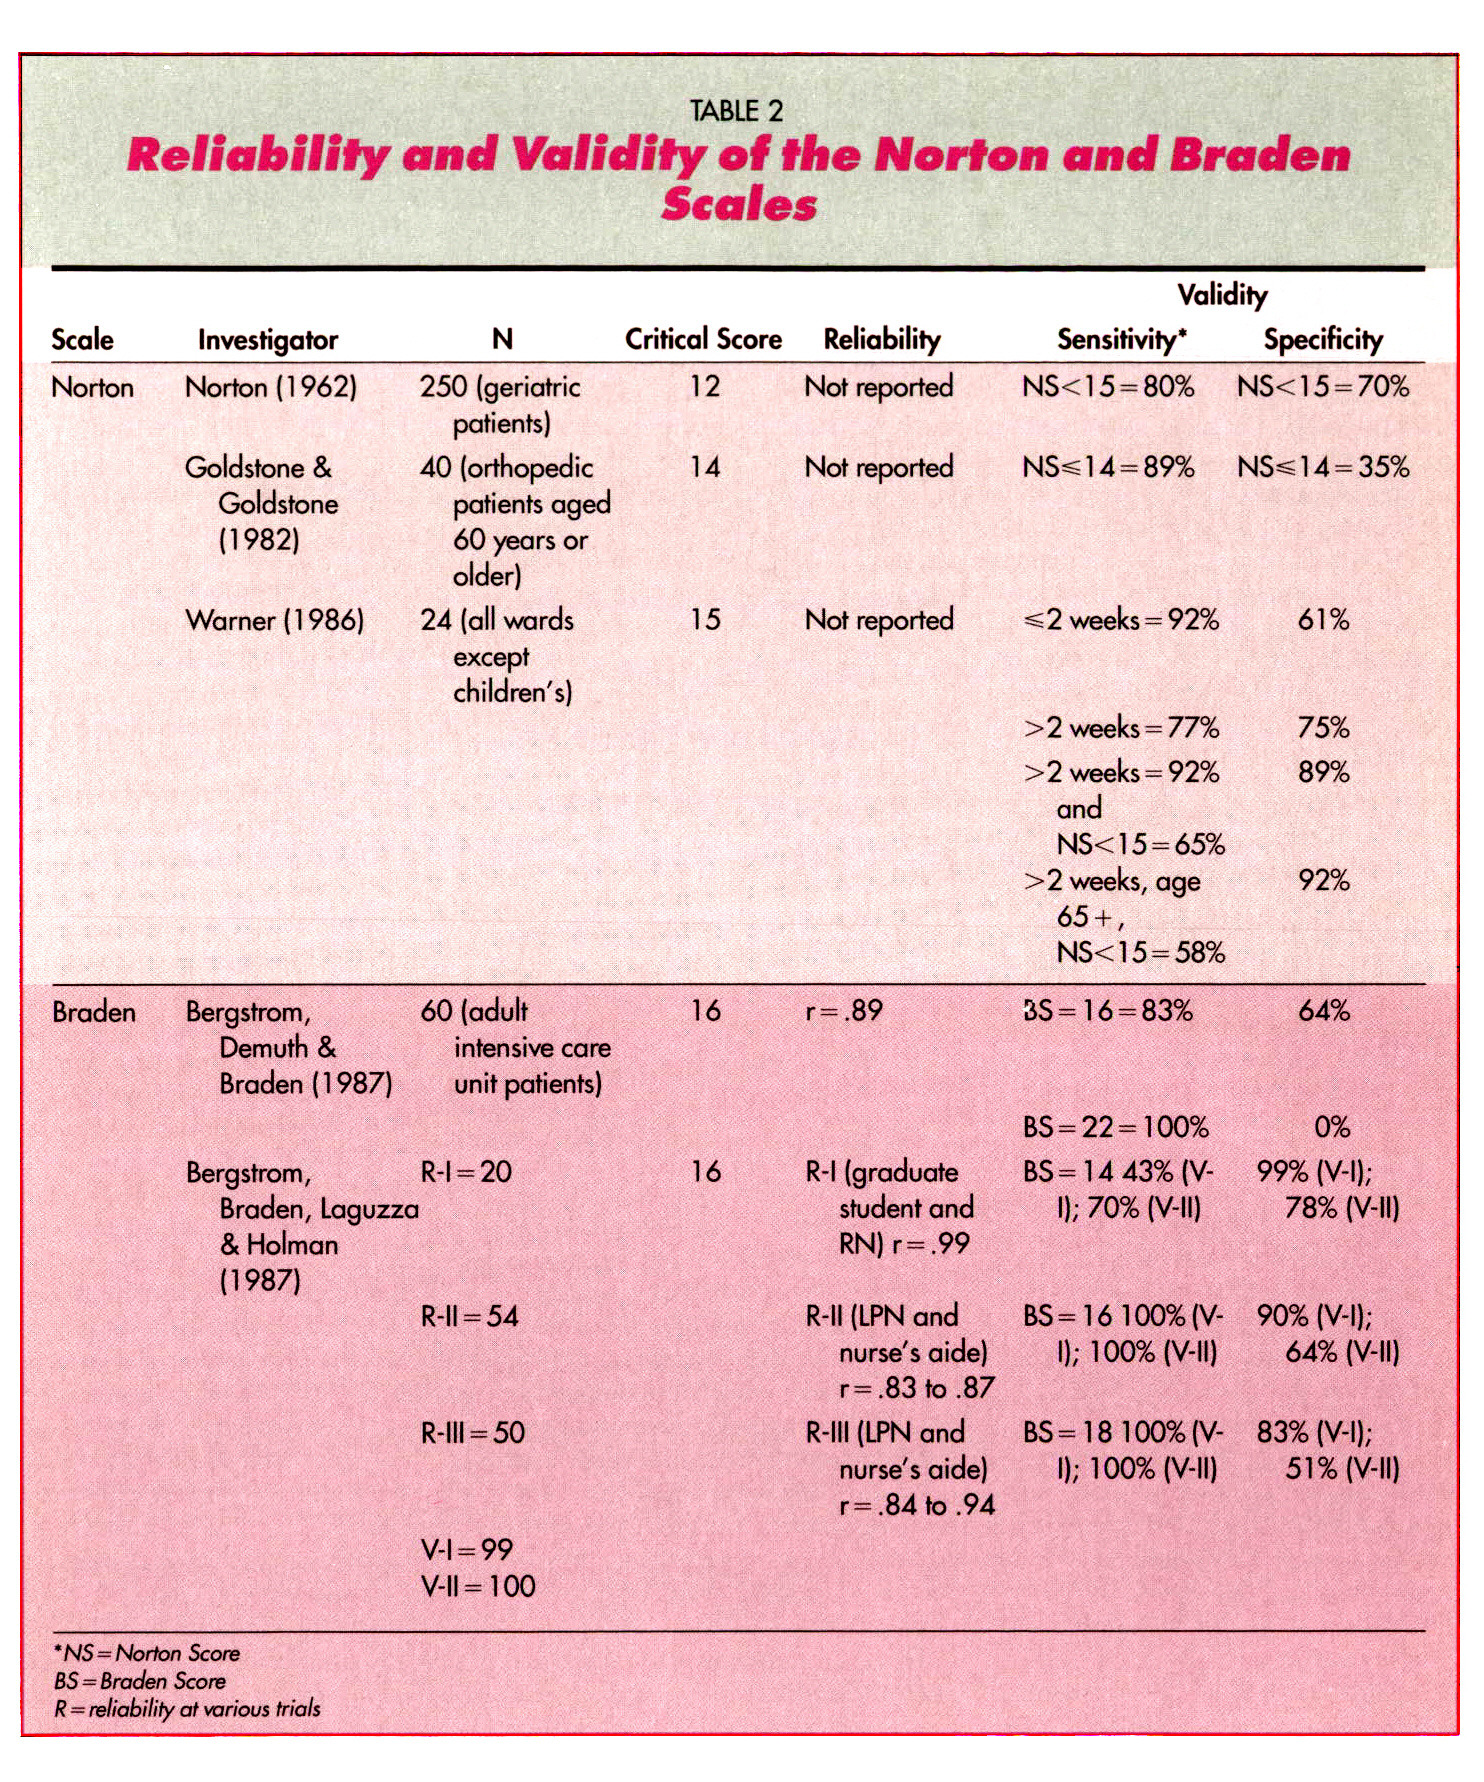 TABLE 2Reliability and Validity of the Norton and Braden Scales